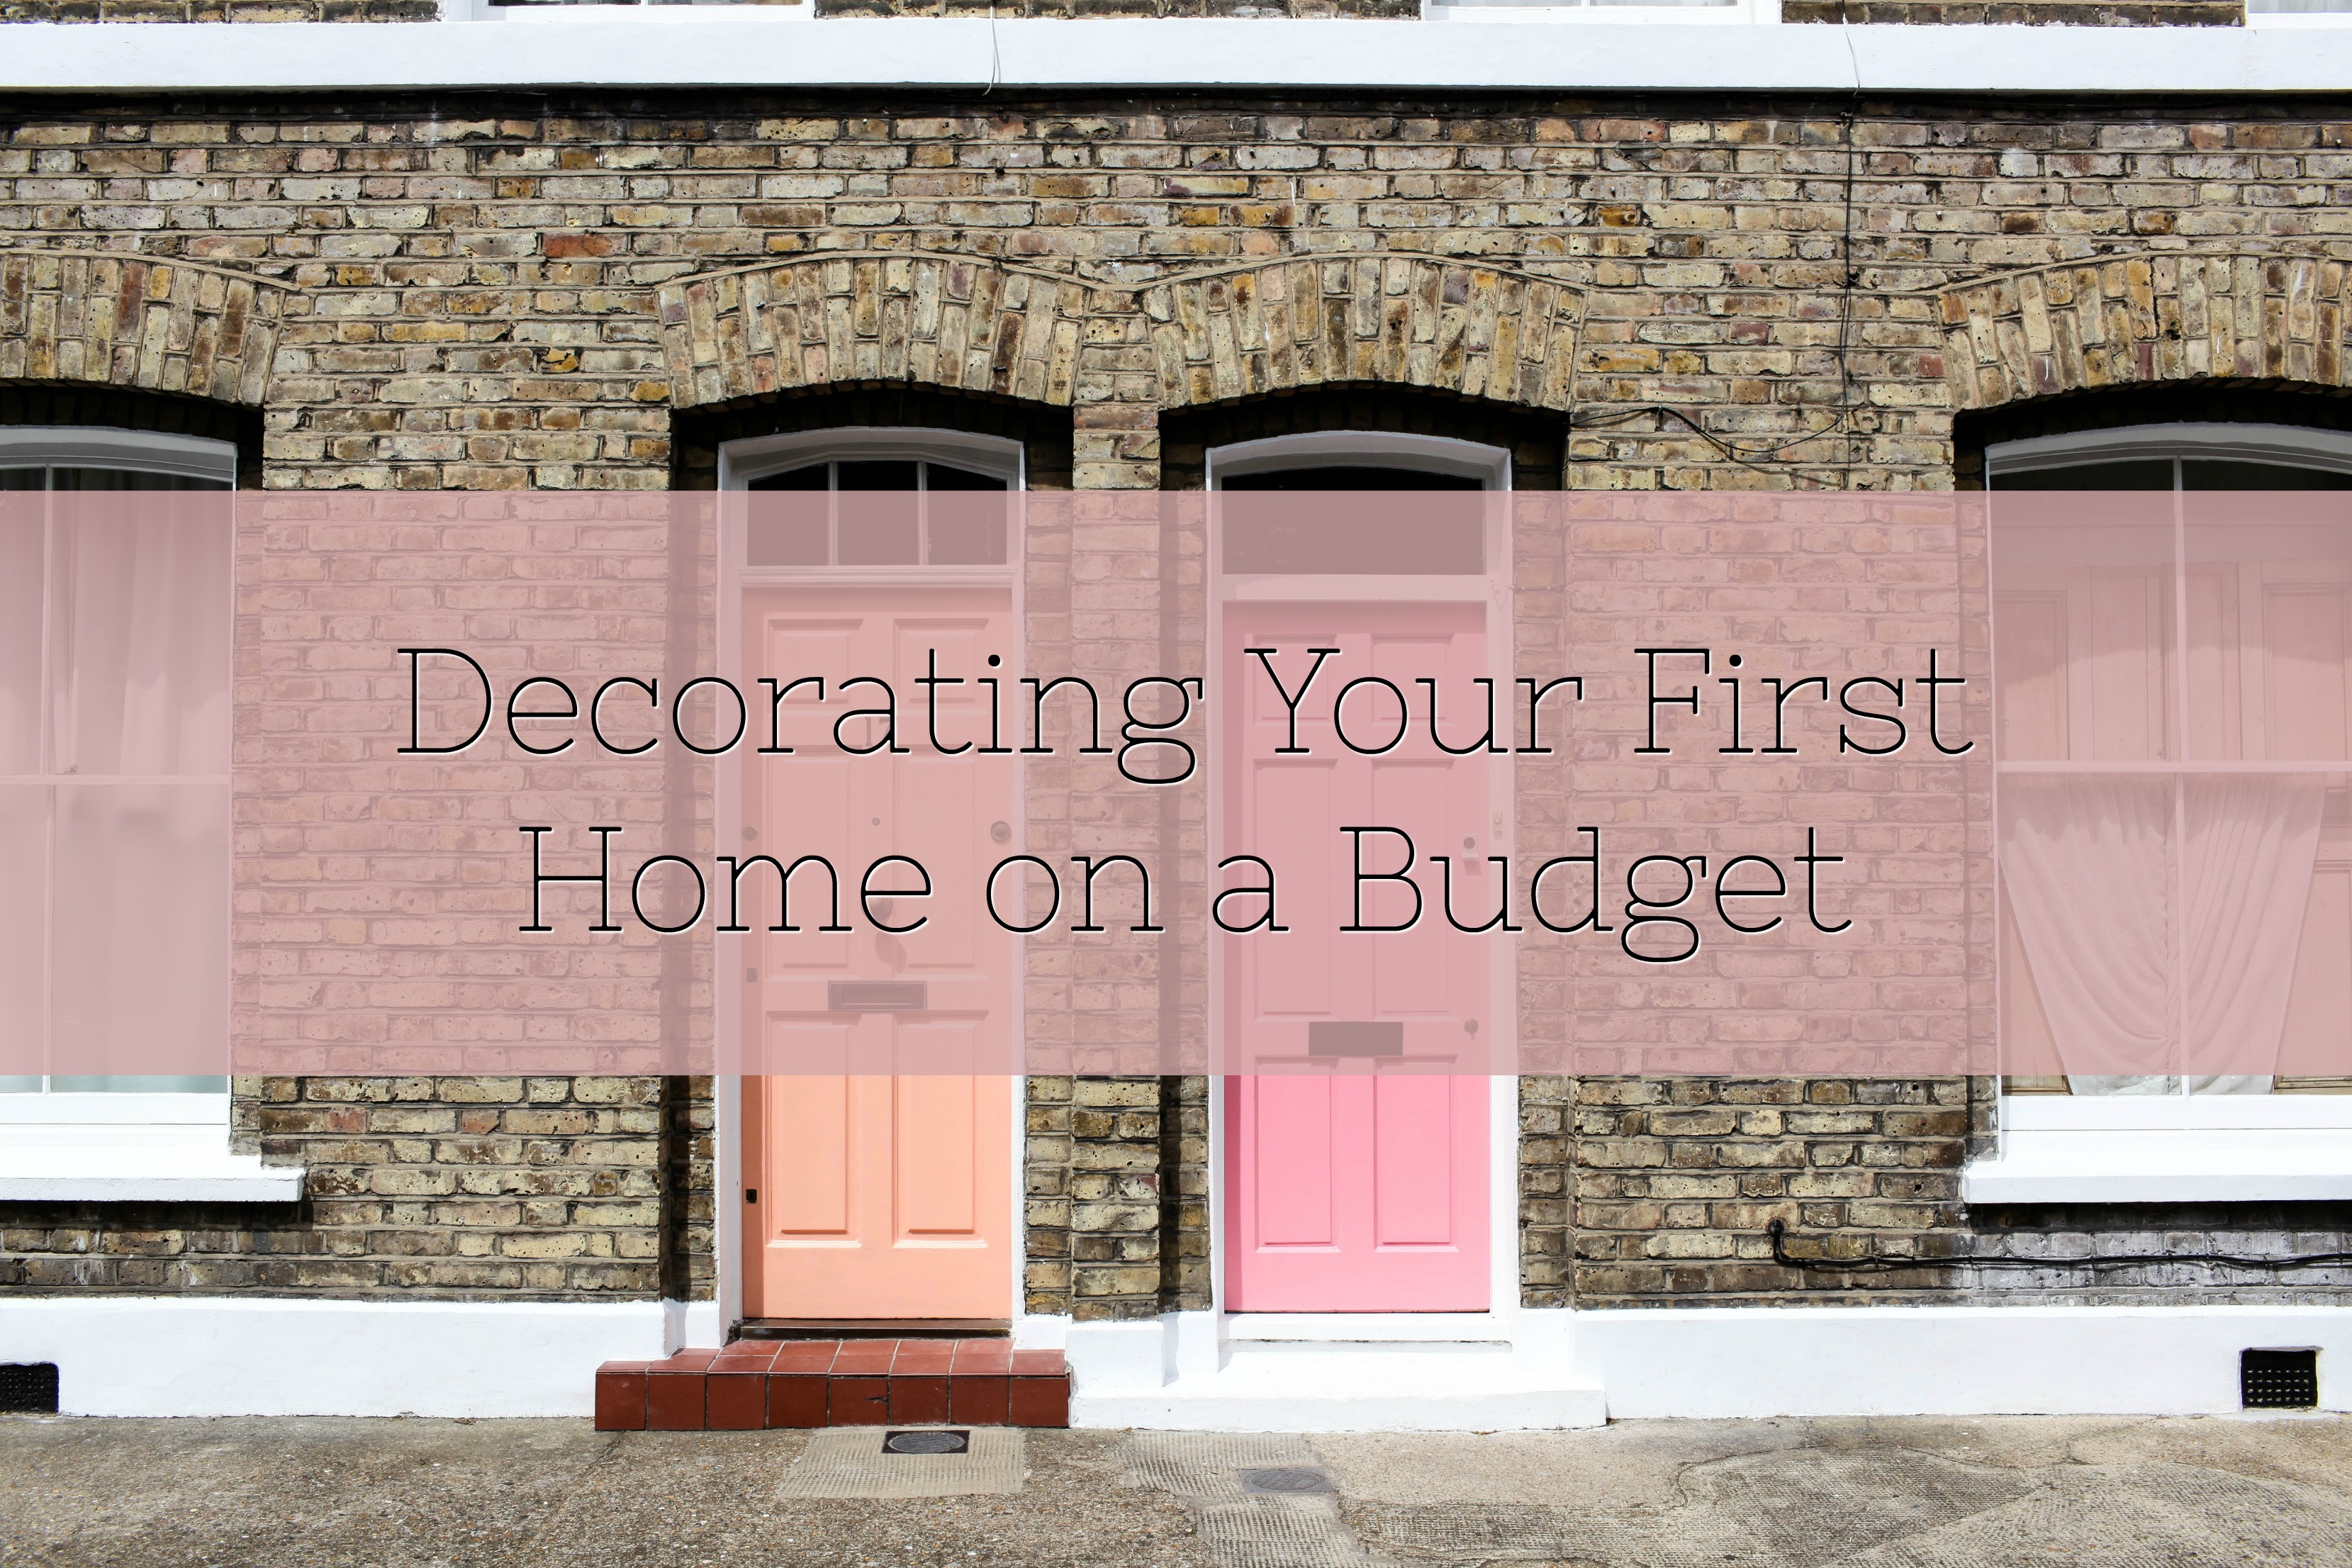 decorating your first home title